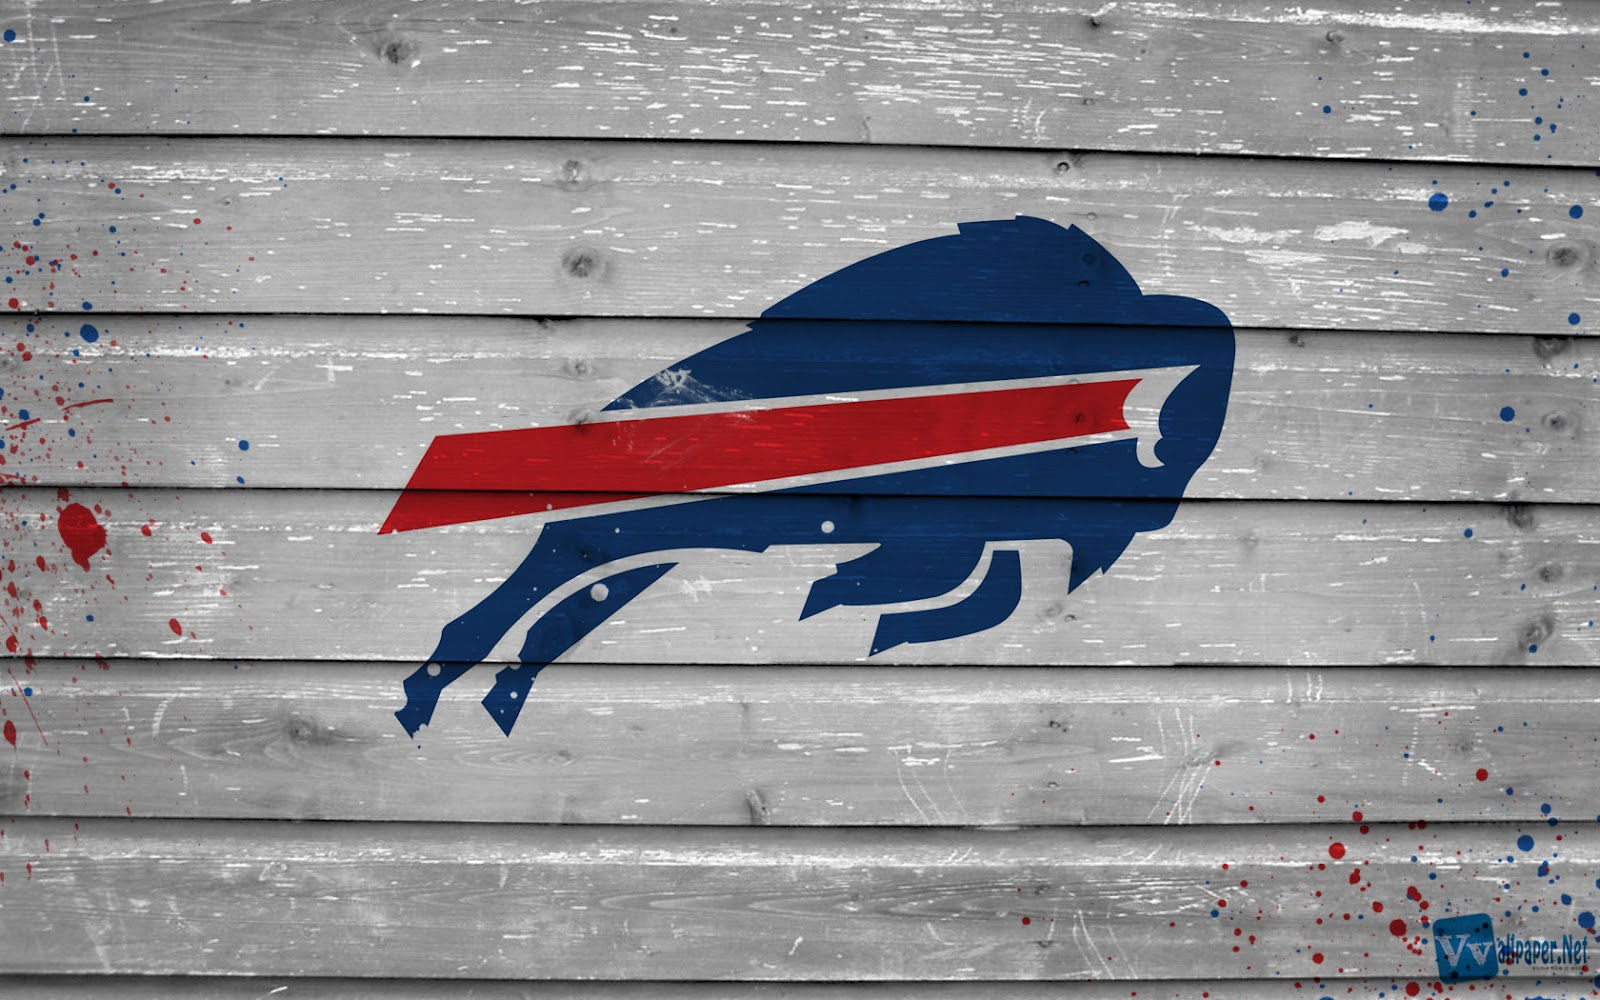 http://1.bp.blogspot.com/-pfzJN436Jwc/T37PtKtWtYI/AAAAAAAABIU/Lsdvy66QFz0/s1600/Buffalo_Bills_Logo_Paint_Splash_Wood_Texture_Desktop+Wallpaper-Vvallapper.Net.jpg